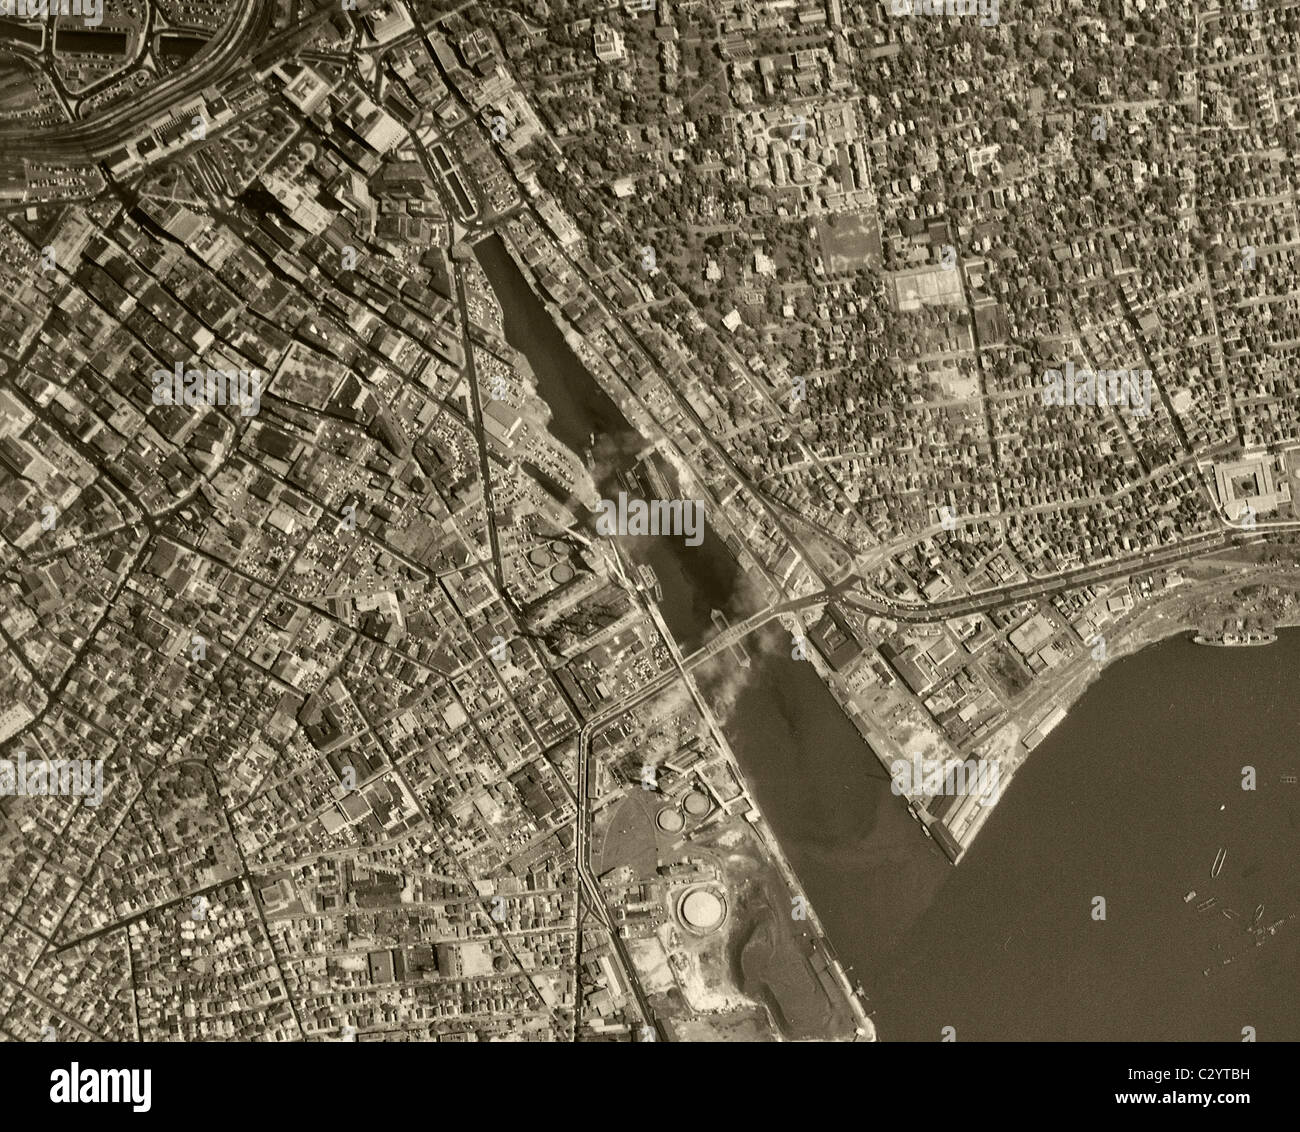 Historical Aerial Map View Above Providence Rhode Island Stock - Historical aerial maps